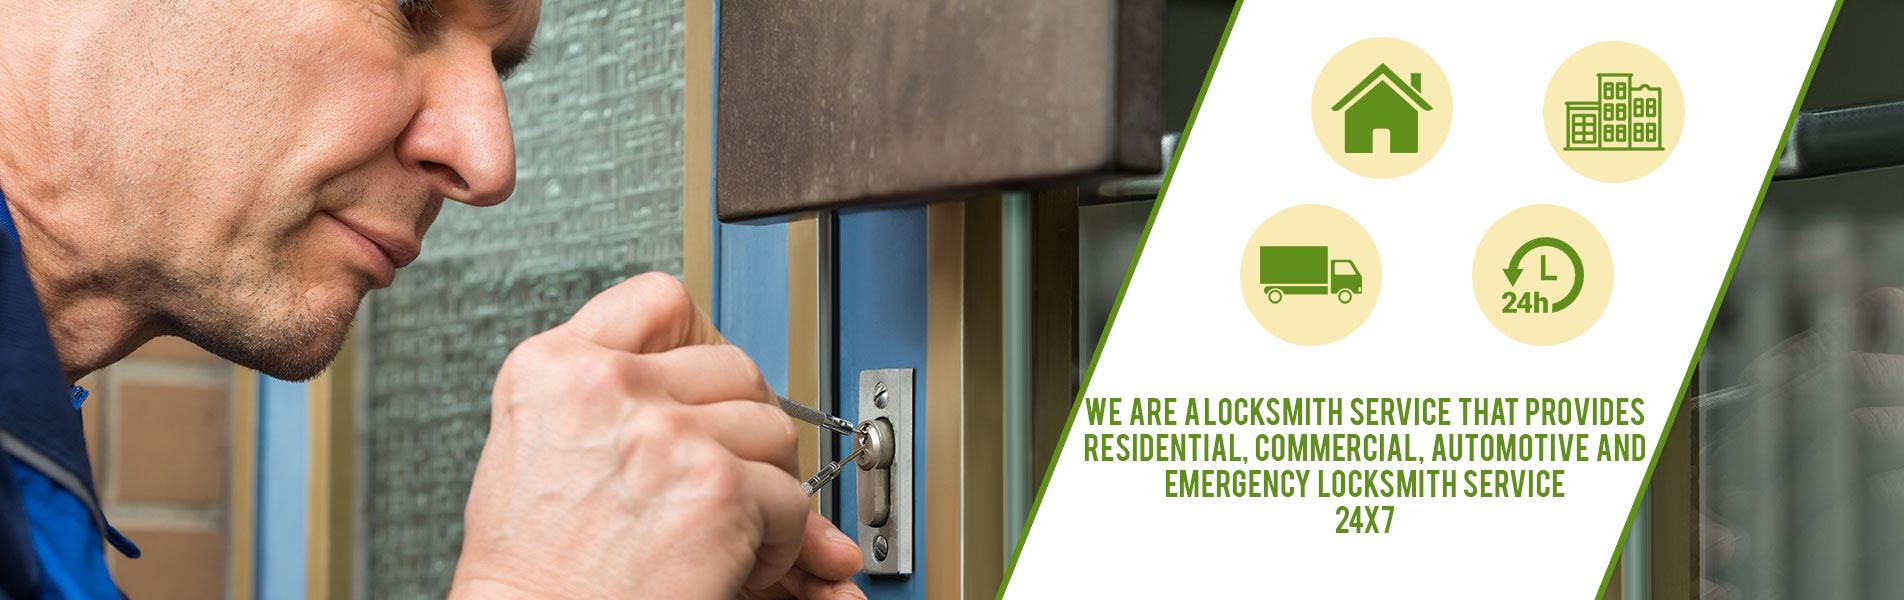 Neighborhood Locksmith Services Vancouver, WA (866) 278-9431